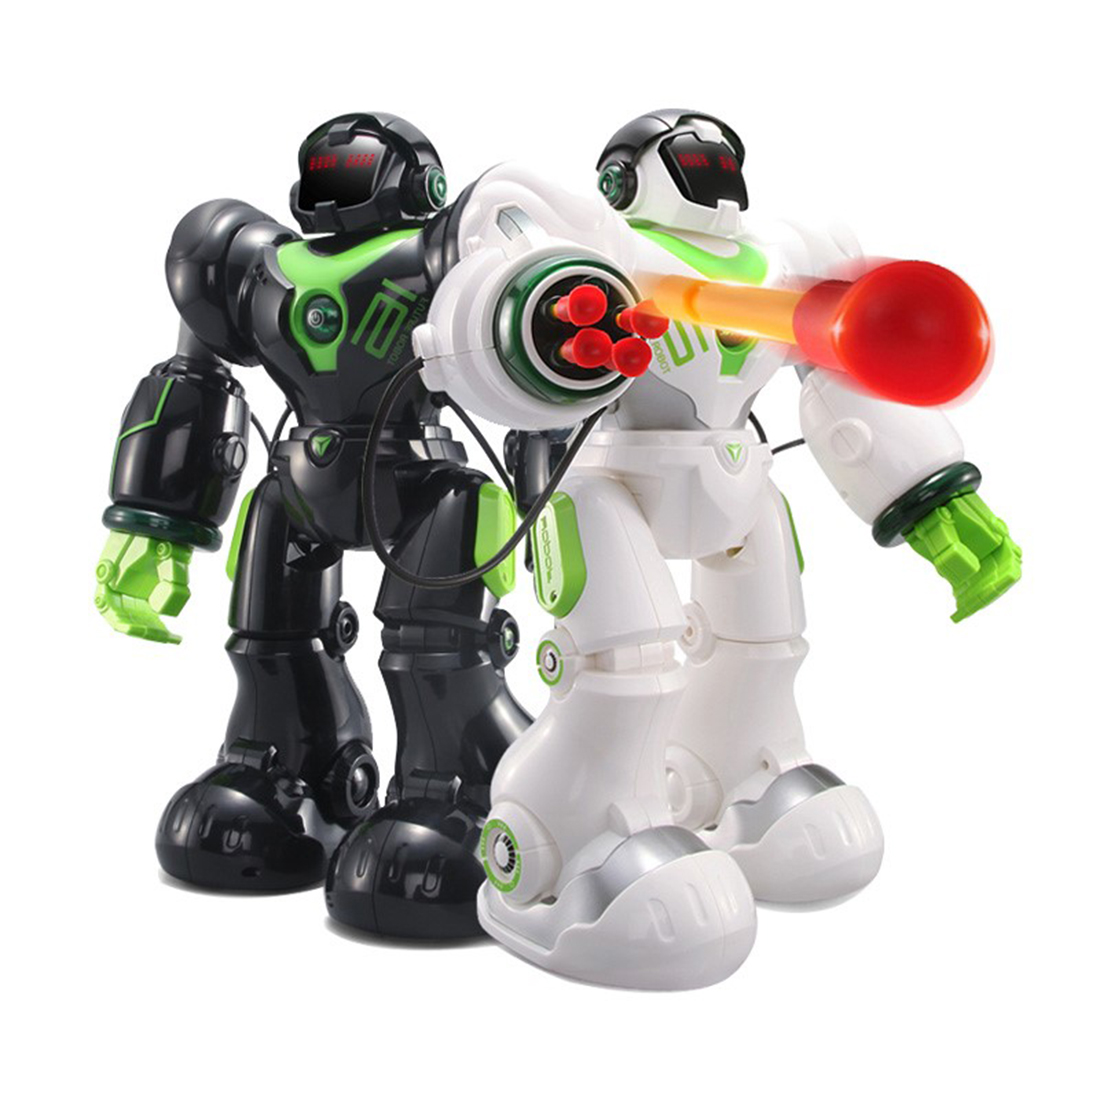 2019 New RC Machinery Robot Toys With Programming Shooting Dancing Battle Functions For Children - Black/White